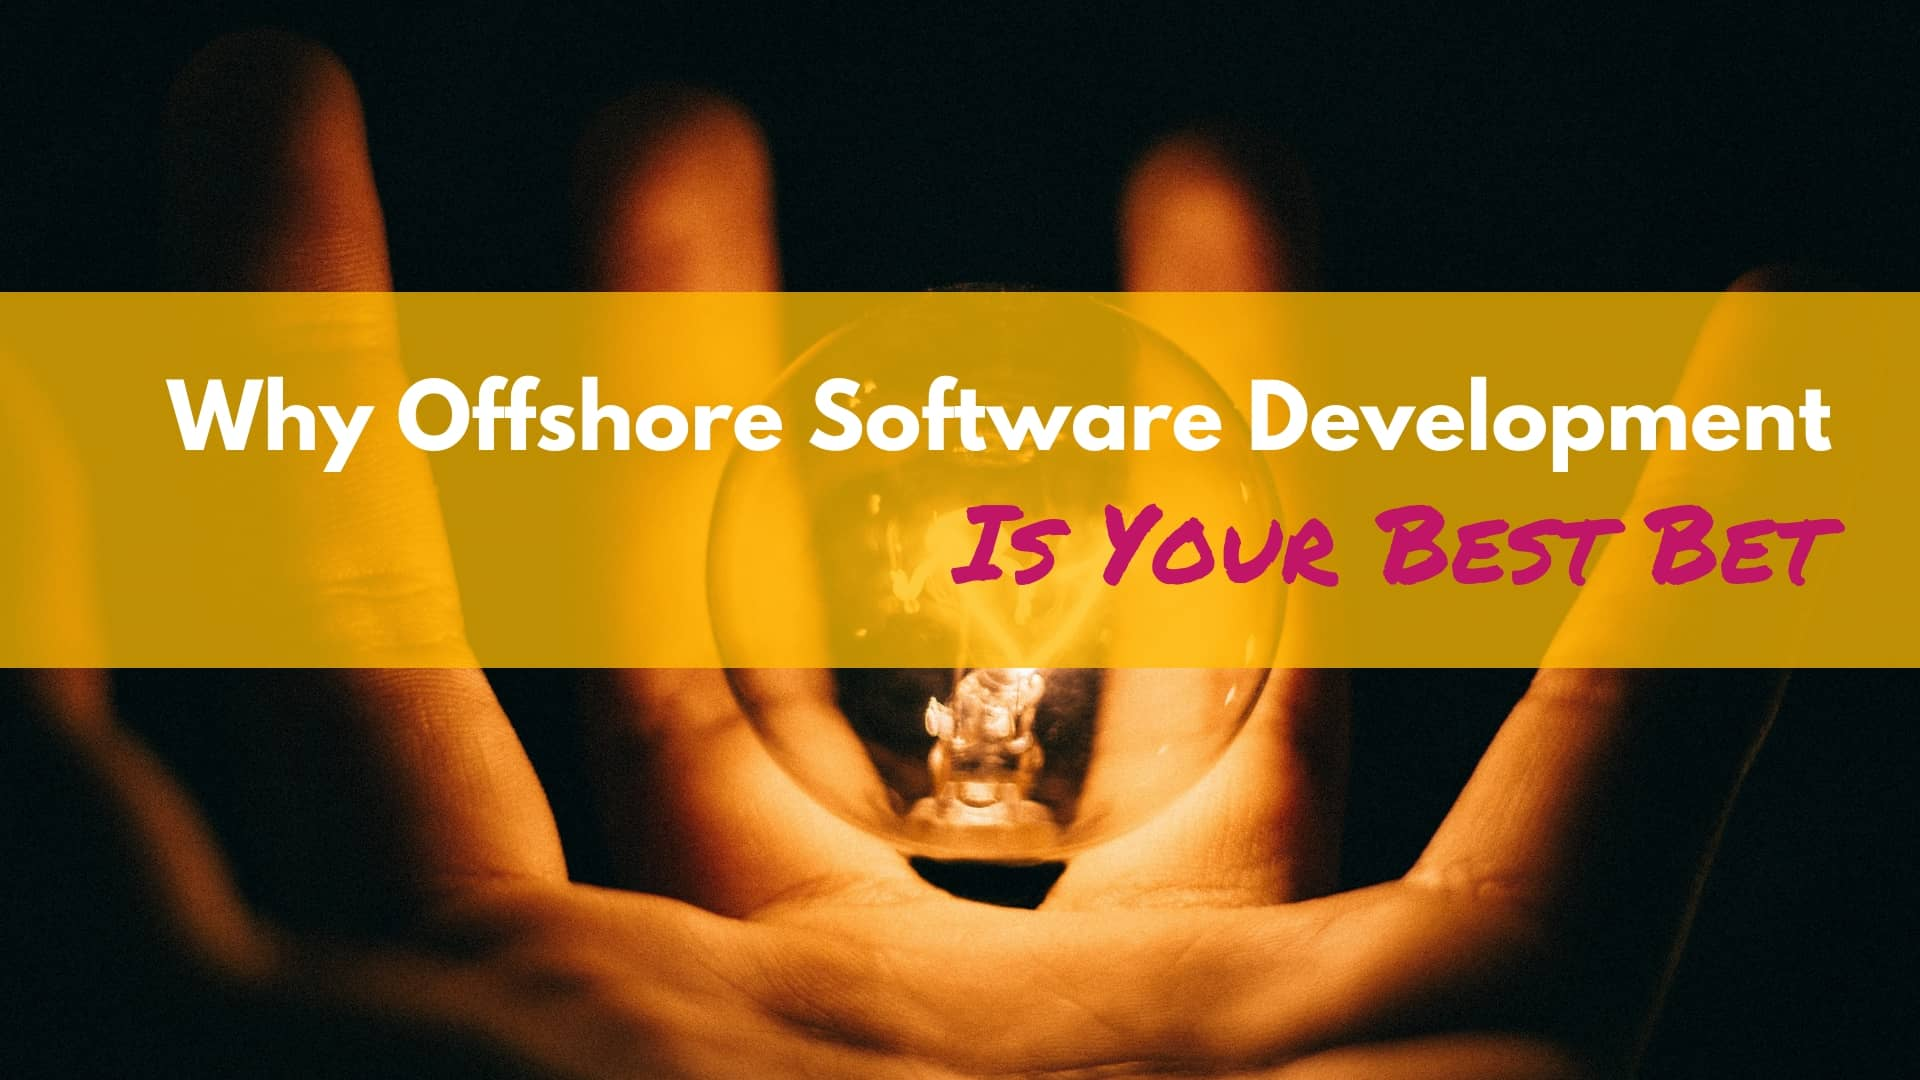 Why Offshore Software Development Is Your Best Bet?